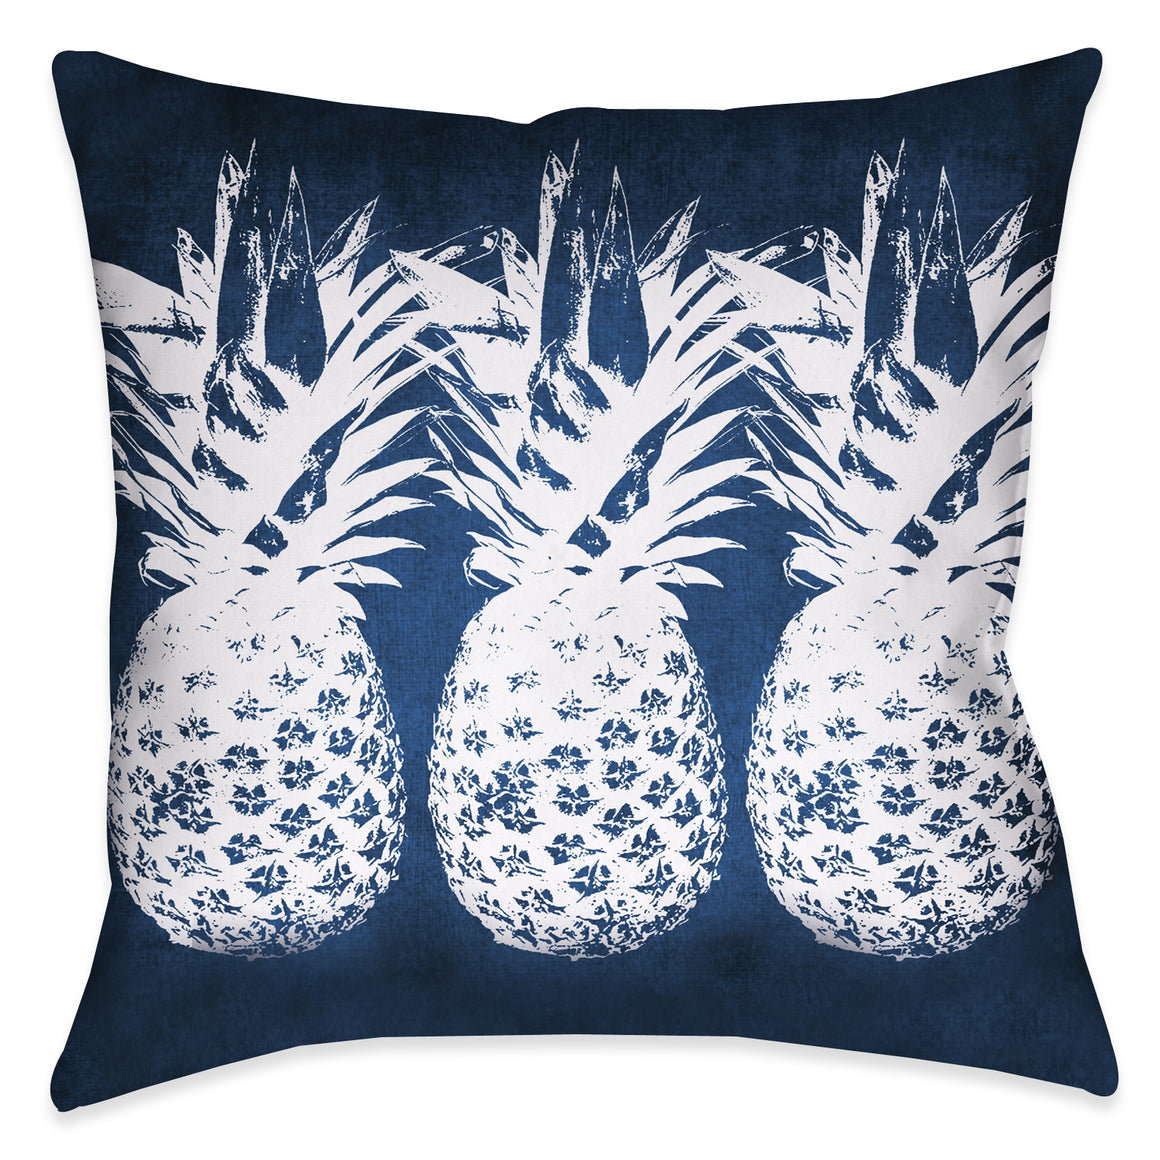 Indigo Pineapples Pillow